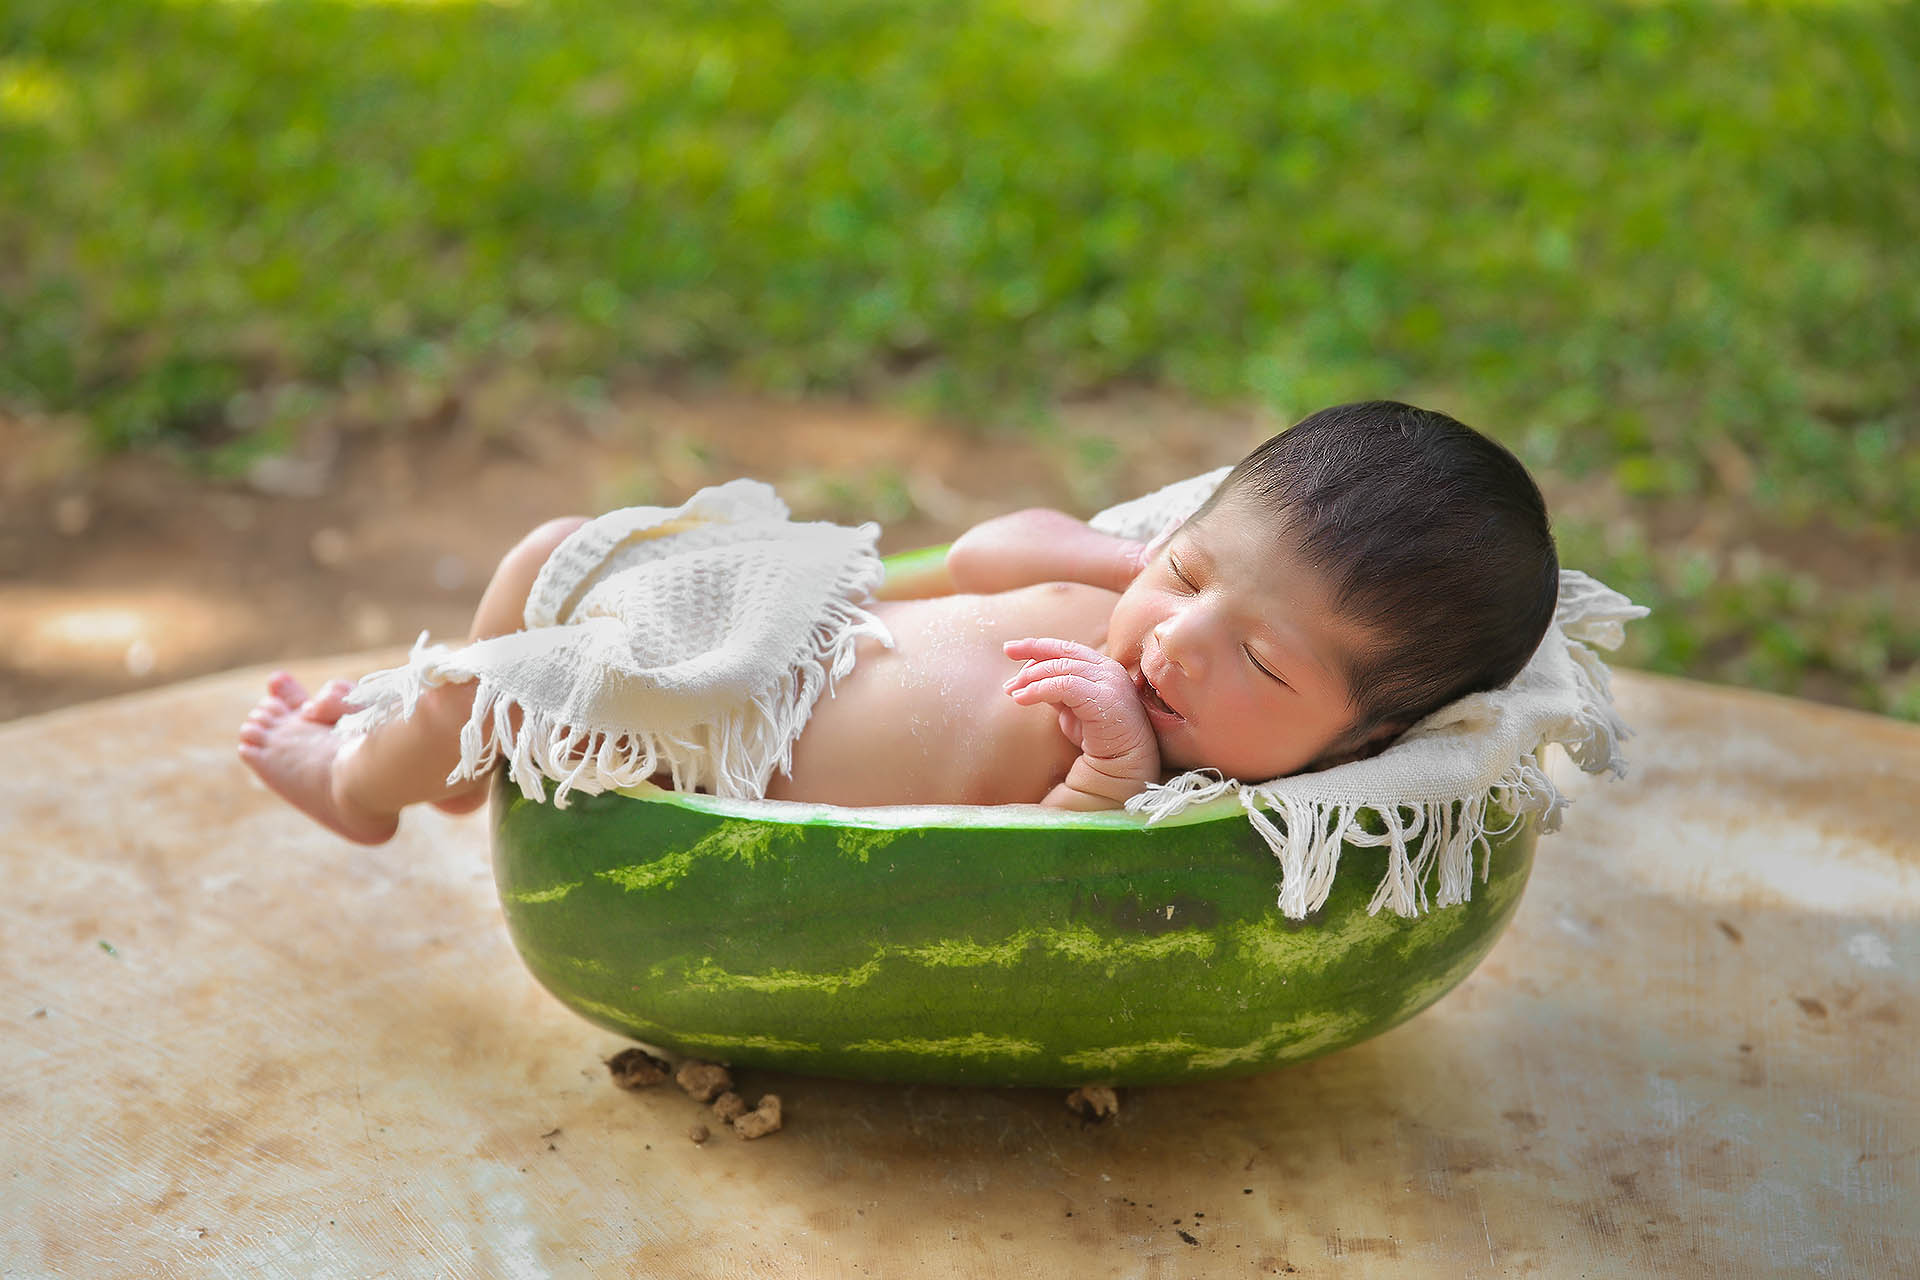 Newborn photography cancun baby in watermelon, fotografia de